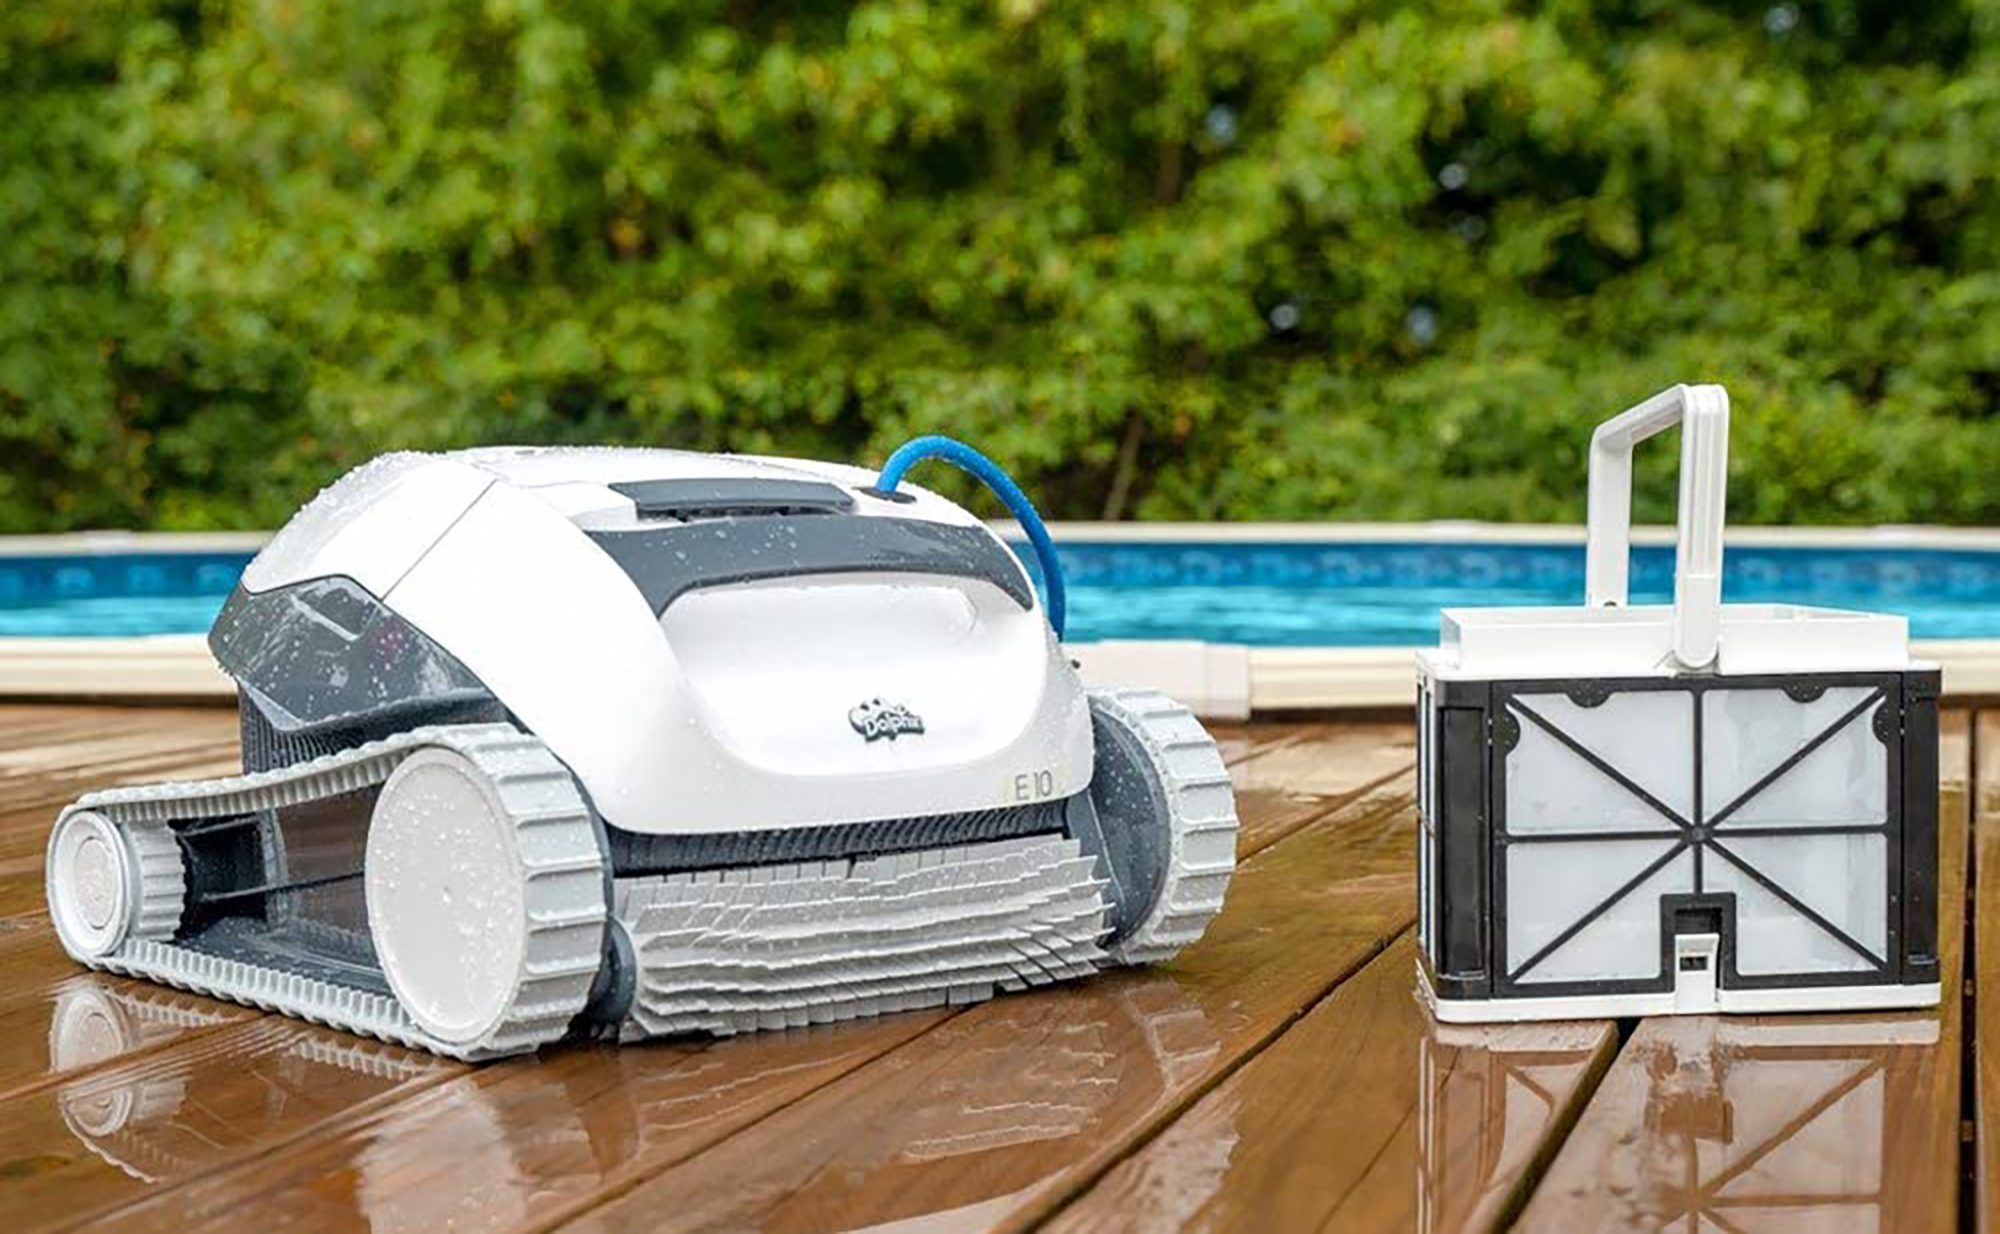 The 7 Best Pool Vacuums And Cleaners Of, What Is The Best Vacuum For Above Ground Pools